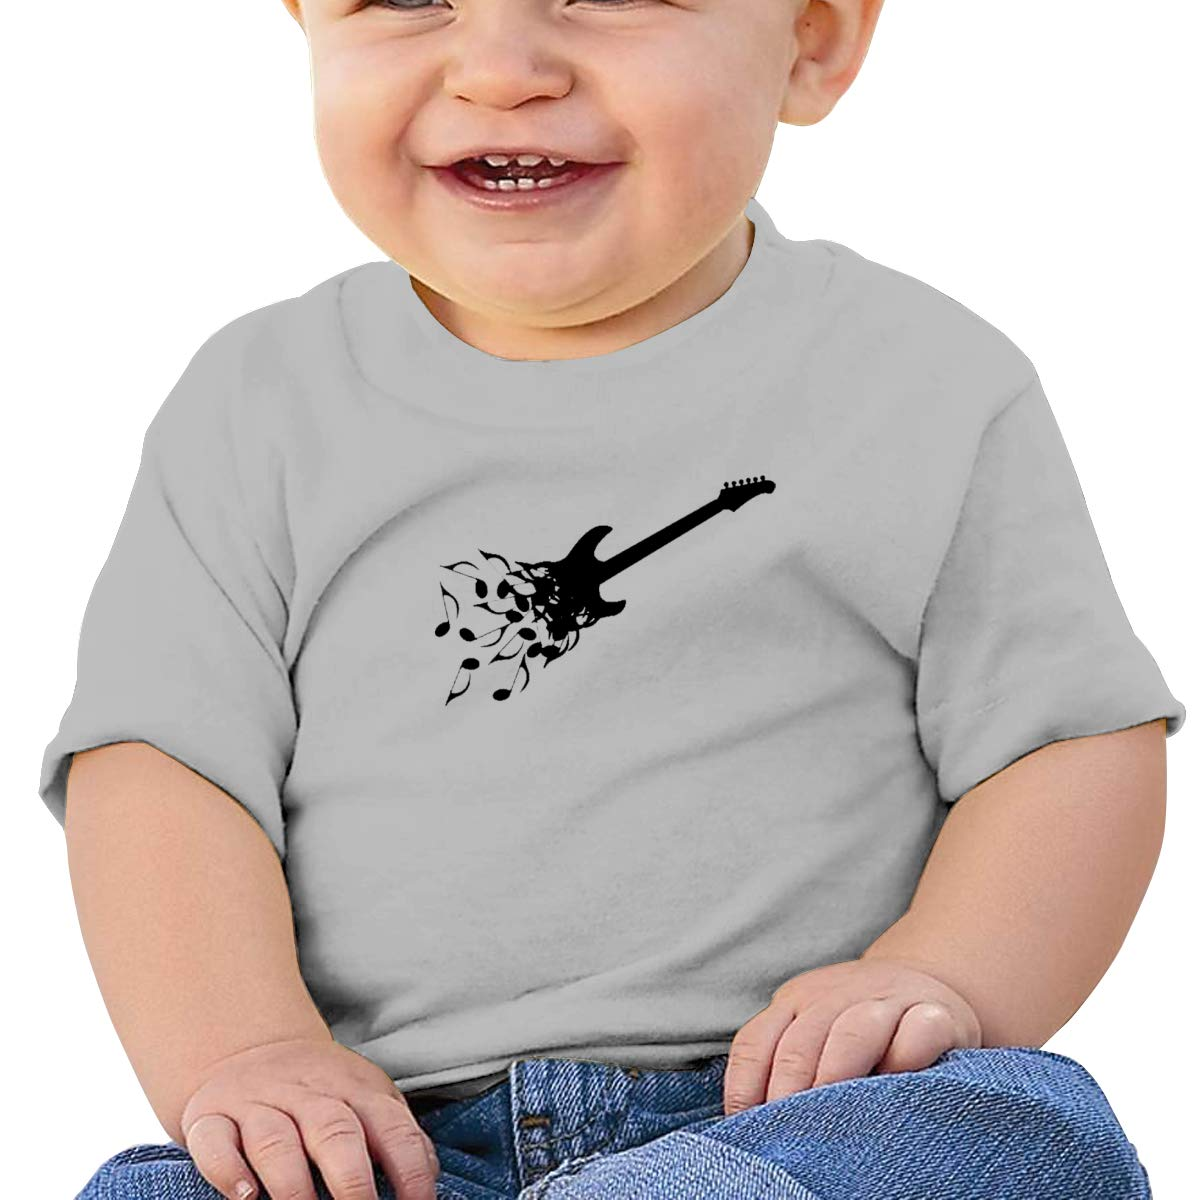 JVNSS Black Guitar and Music Notes Baby T-Shirt Toddler Cotton T Shirts Short Sleeve Clothes for 6M-2T Baby